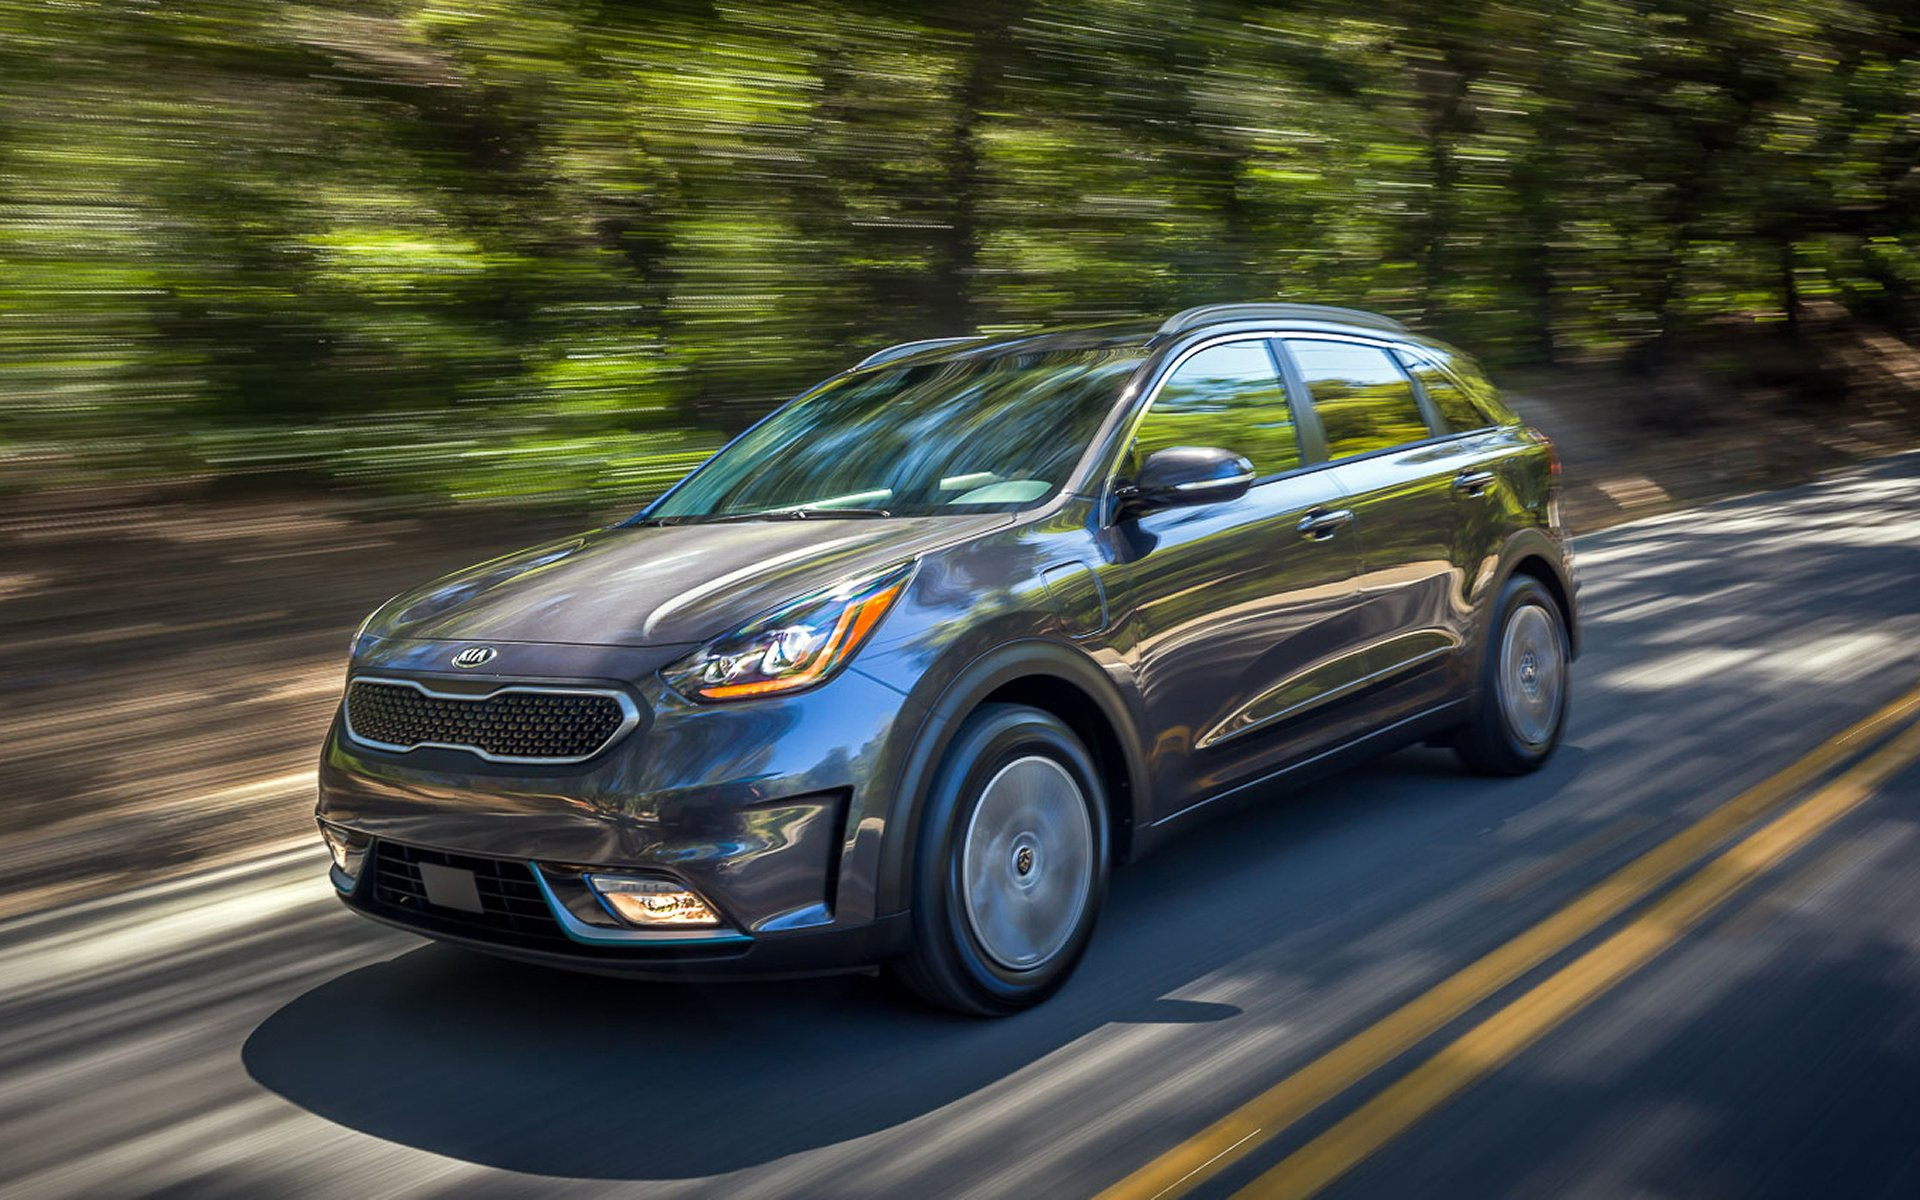 kia soon to release all electric 2018 niro brand set to have 8 evs by 2022 the news wheel. Black Bedroom Furniture Sets. Home Design Ideas